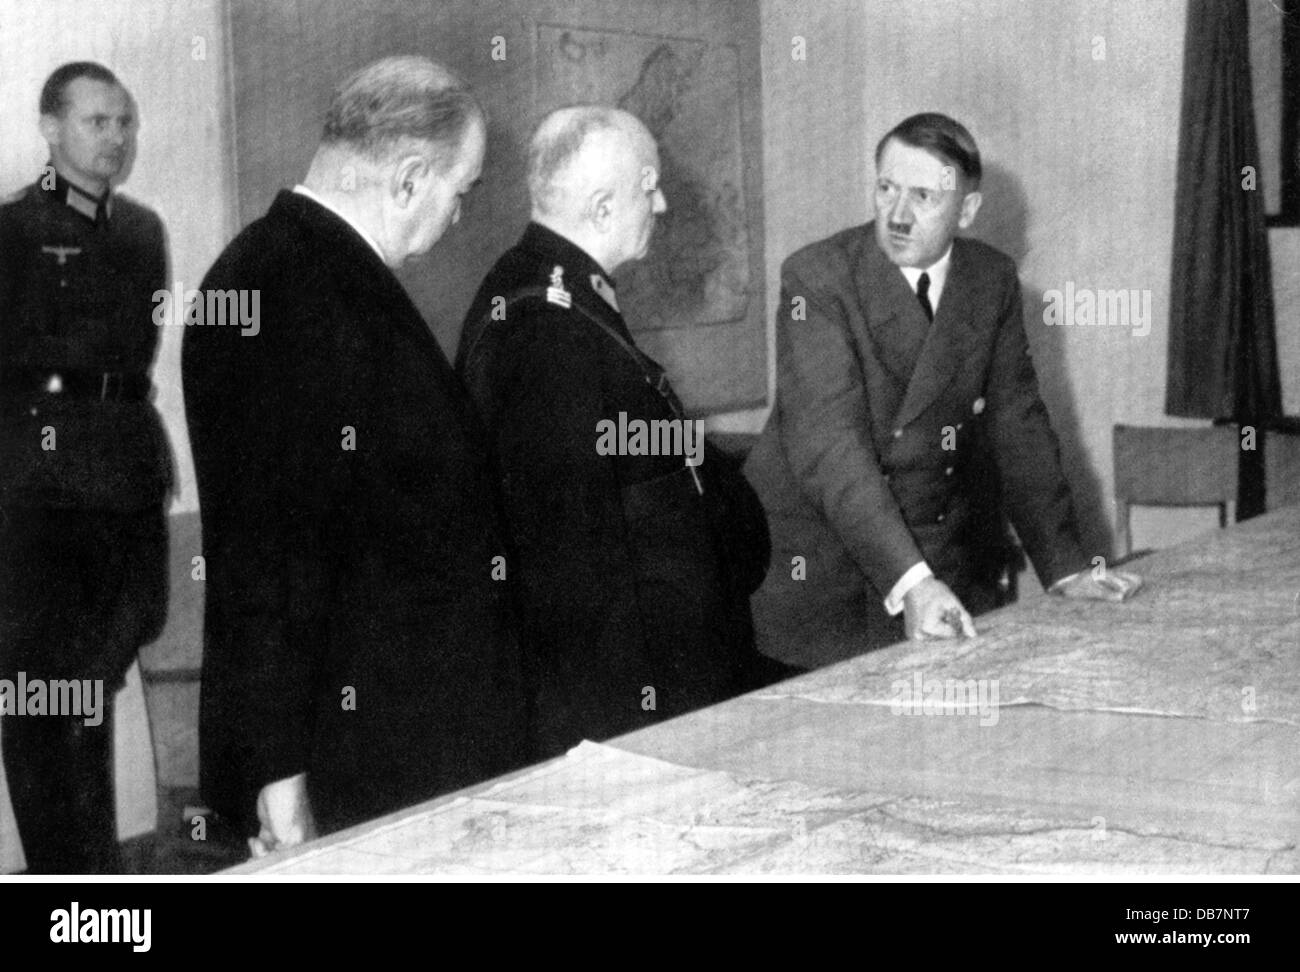 Hitler, Adolf, 20.4.1889 - 30.4.1945, German politician (NSDAP), Chancellor of the Reich 30.1.1933 - 30.4.1945, - Stock Image